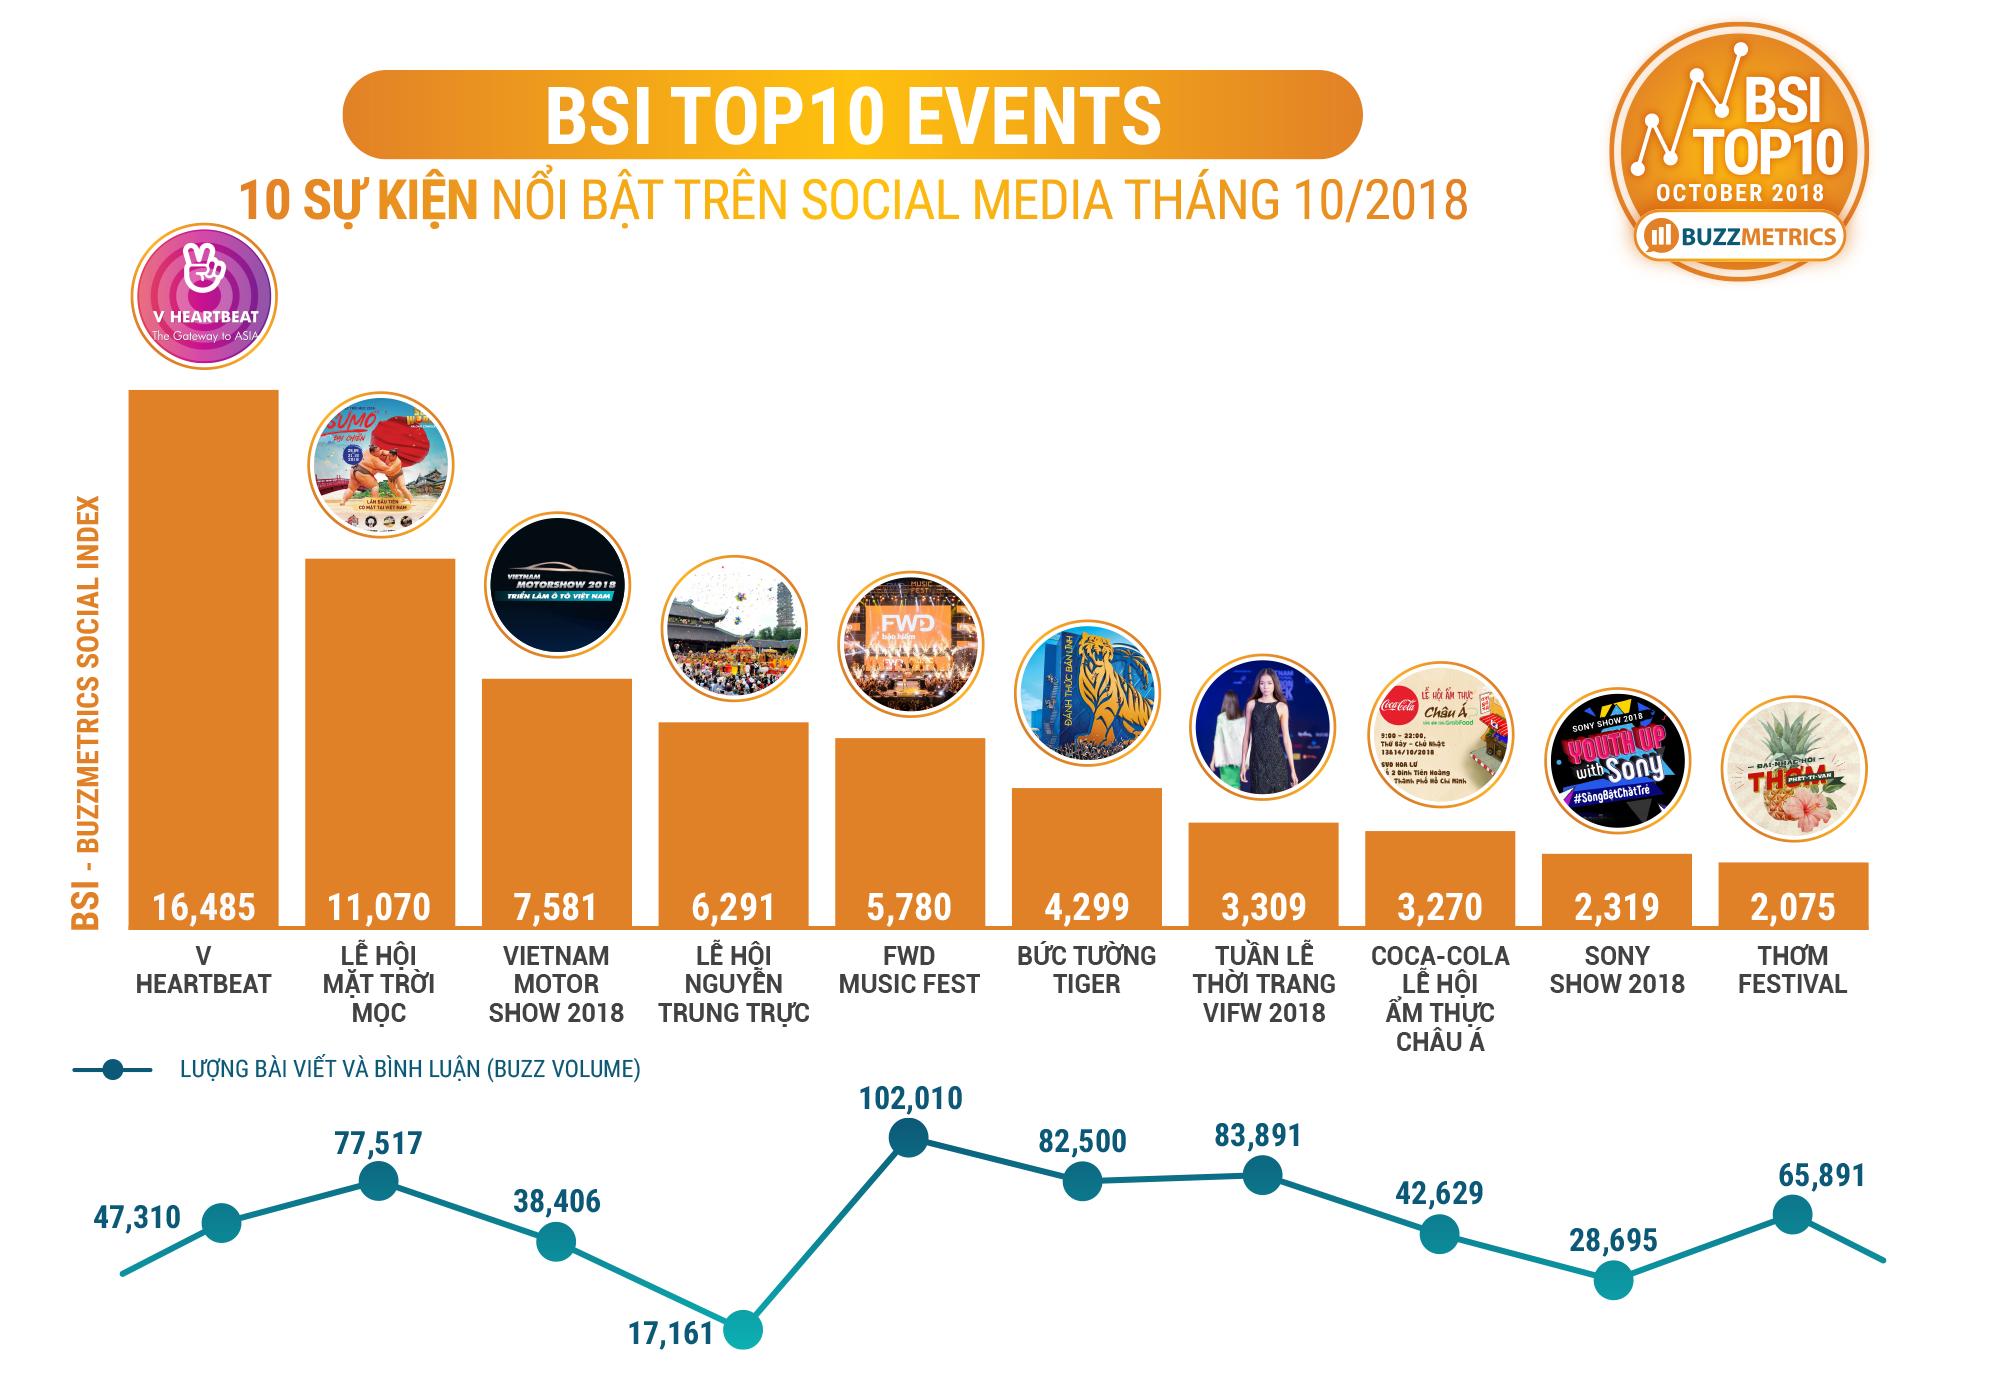 BSI Top10 Events 10/2018